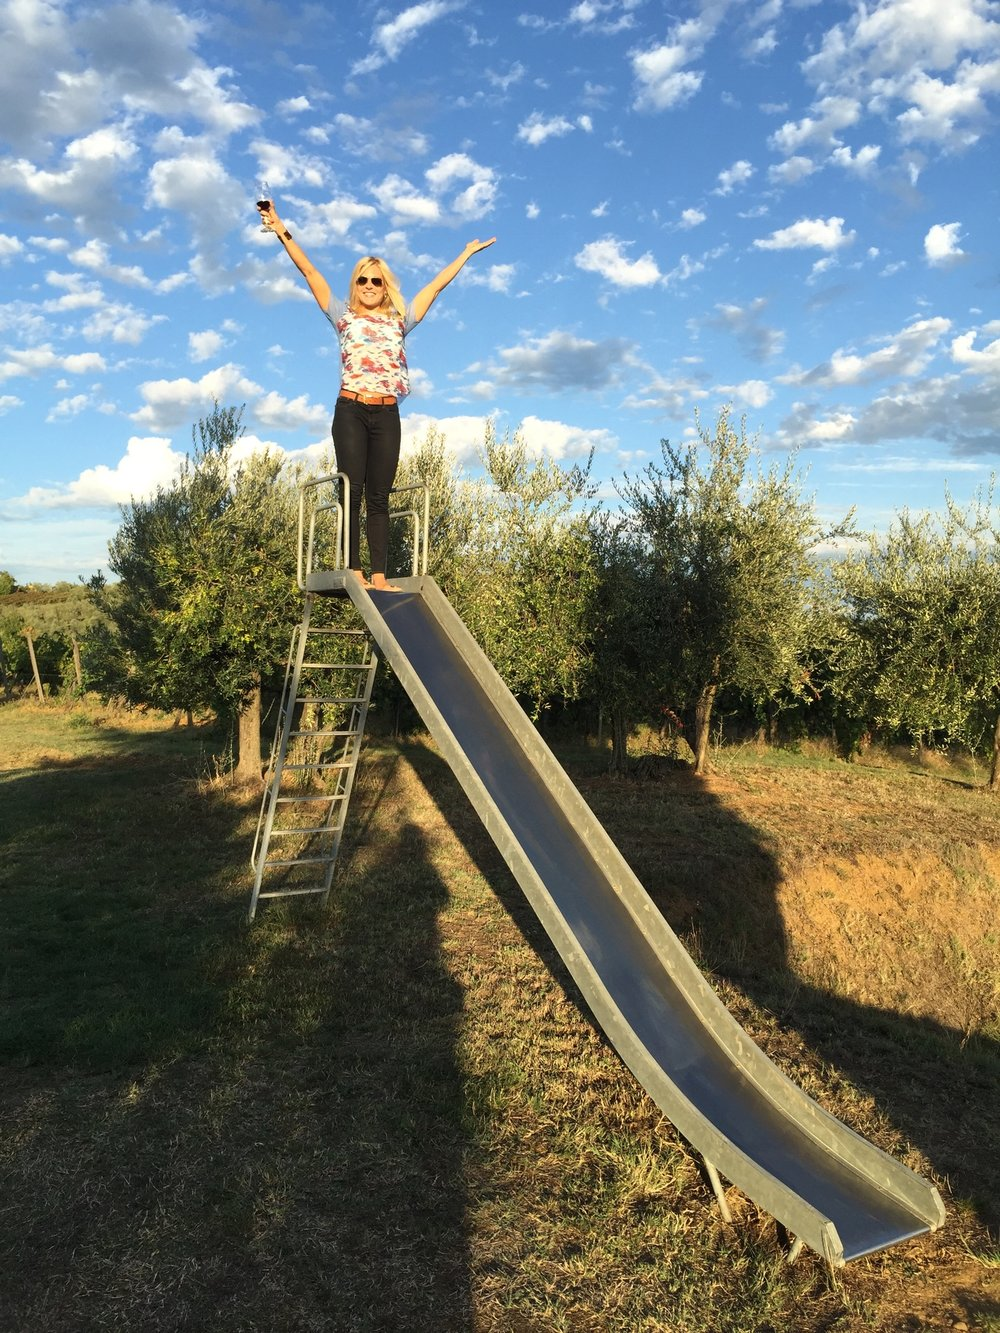 www.annakooiman.com fitness travel lifestyle tuscany chianti wine grapes vineyard olives italy